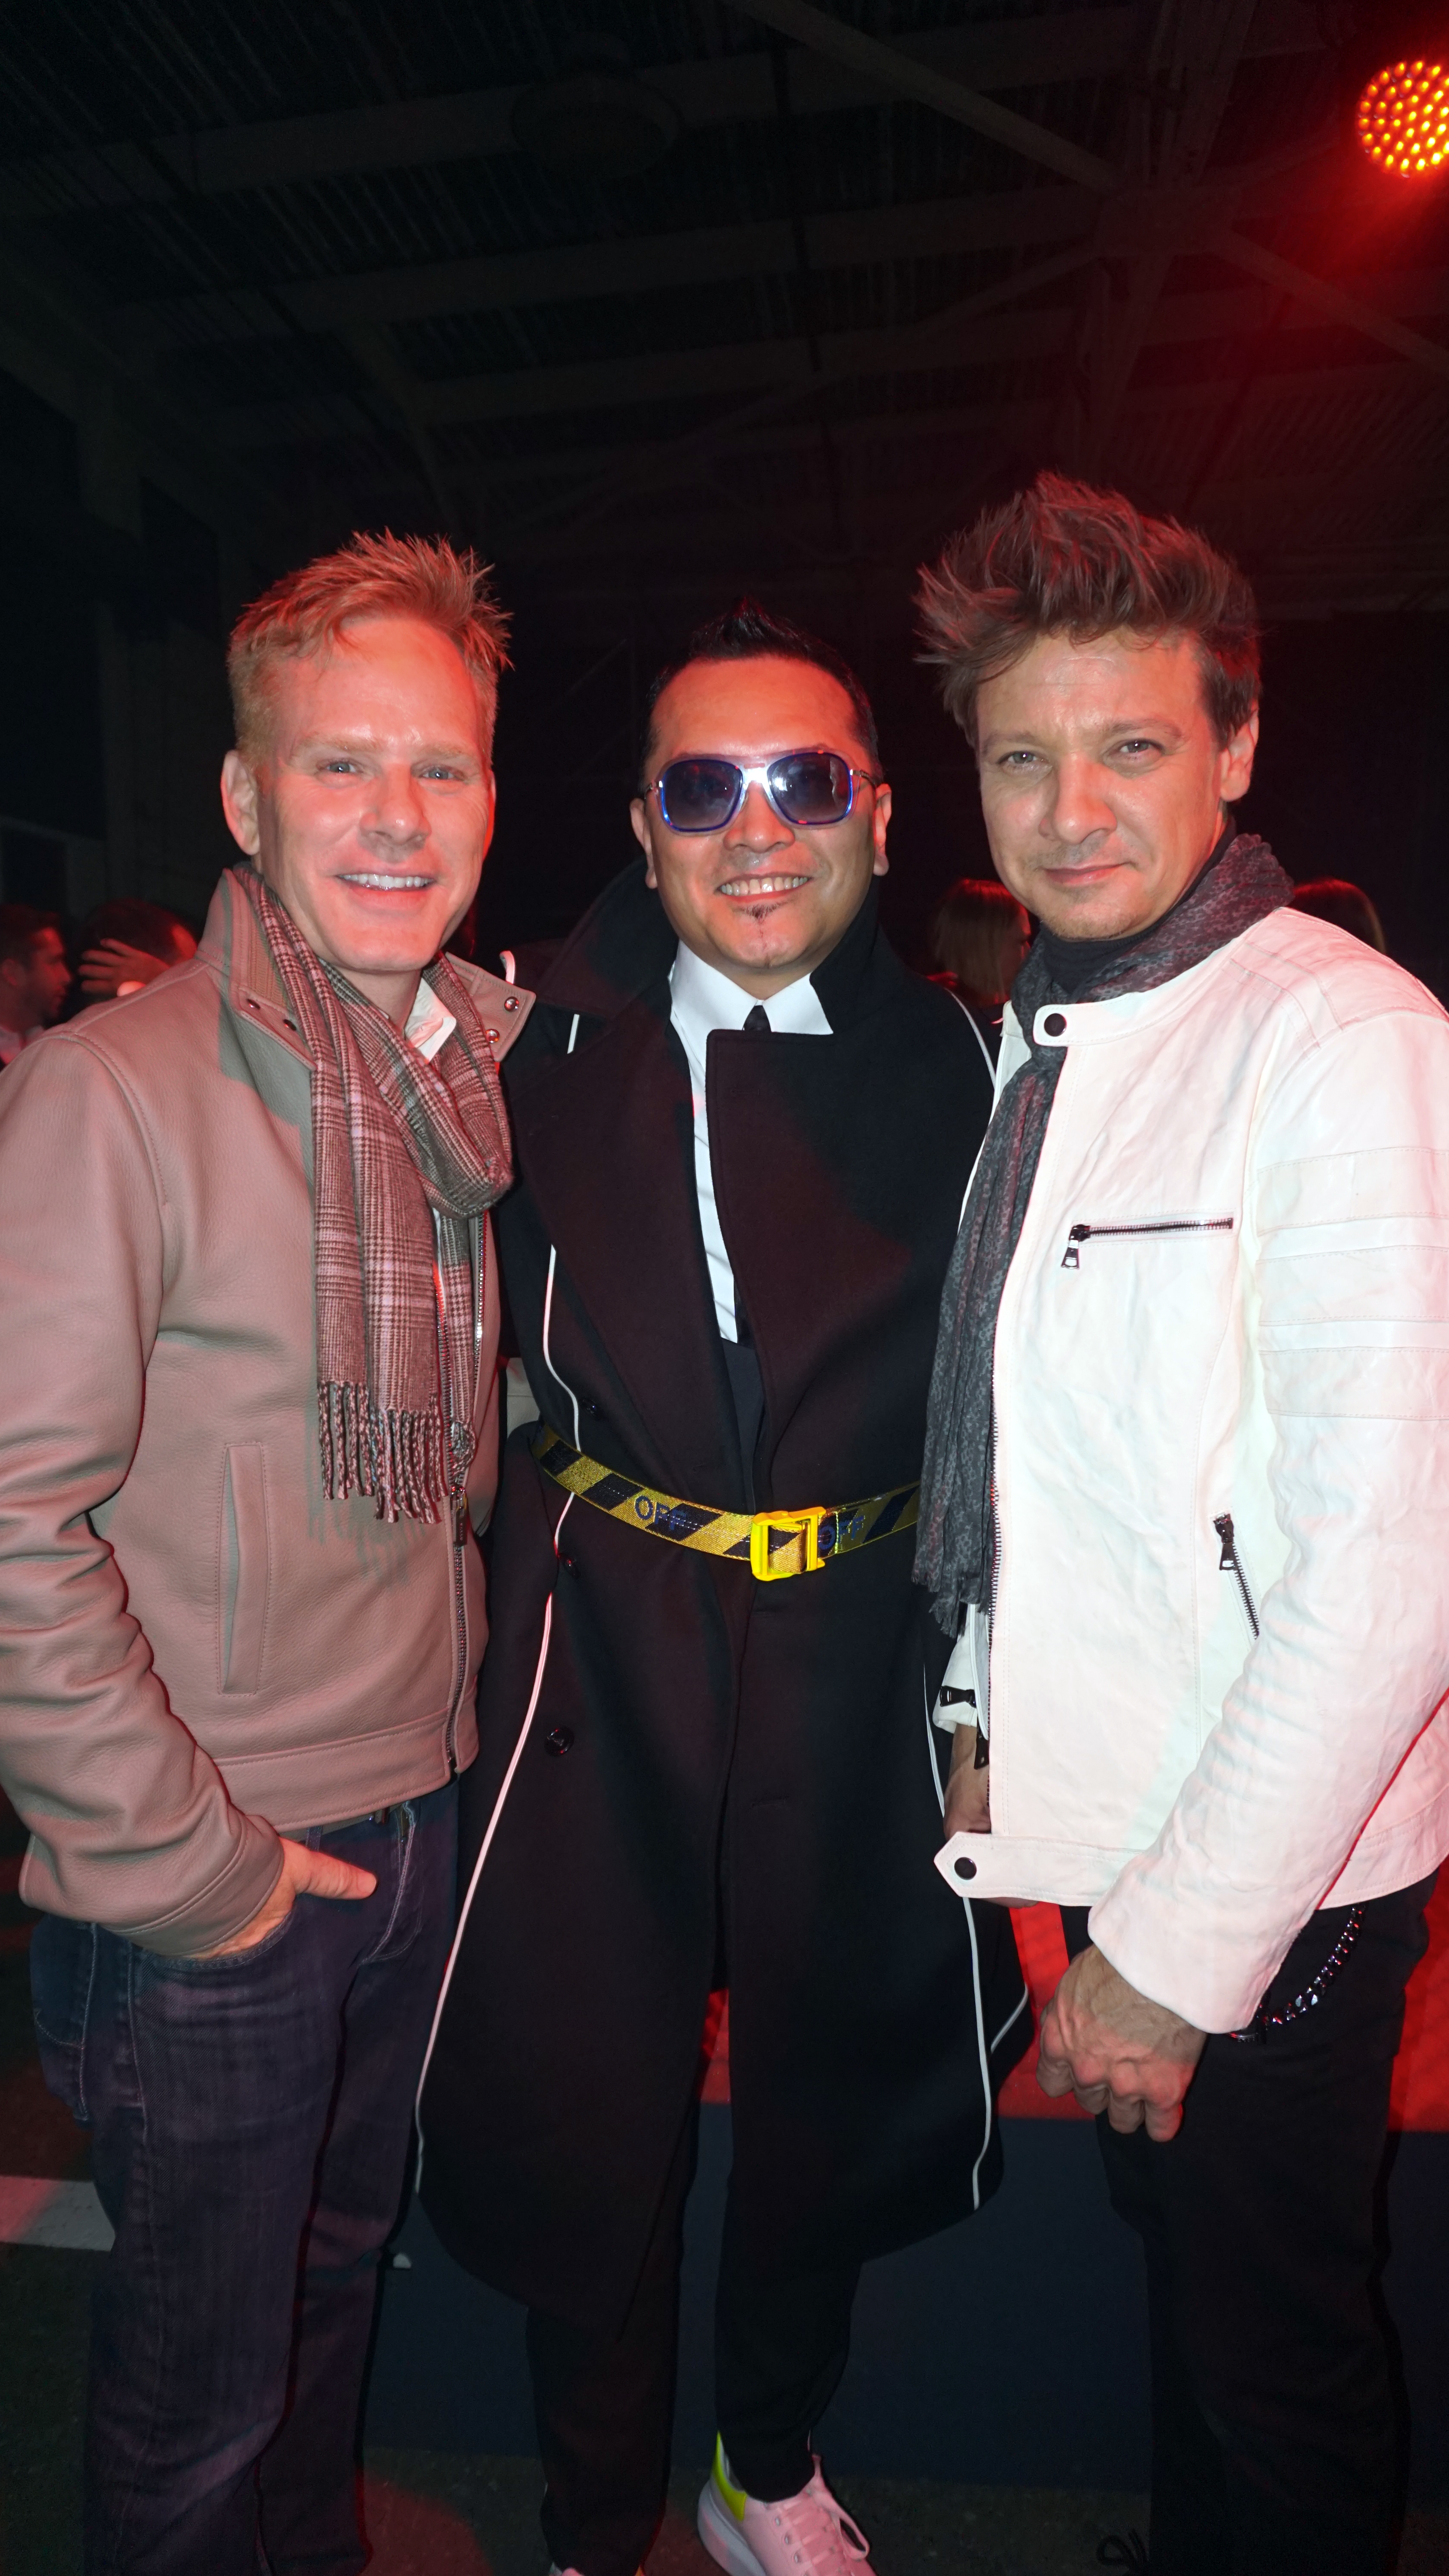 Gordon hangs out with dear old friends Kristoffer Winters and Jeremy Renner at the star-studded Cartier party, naturally